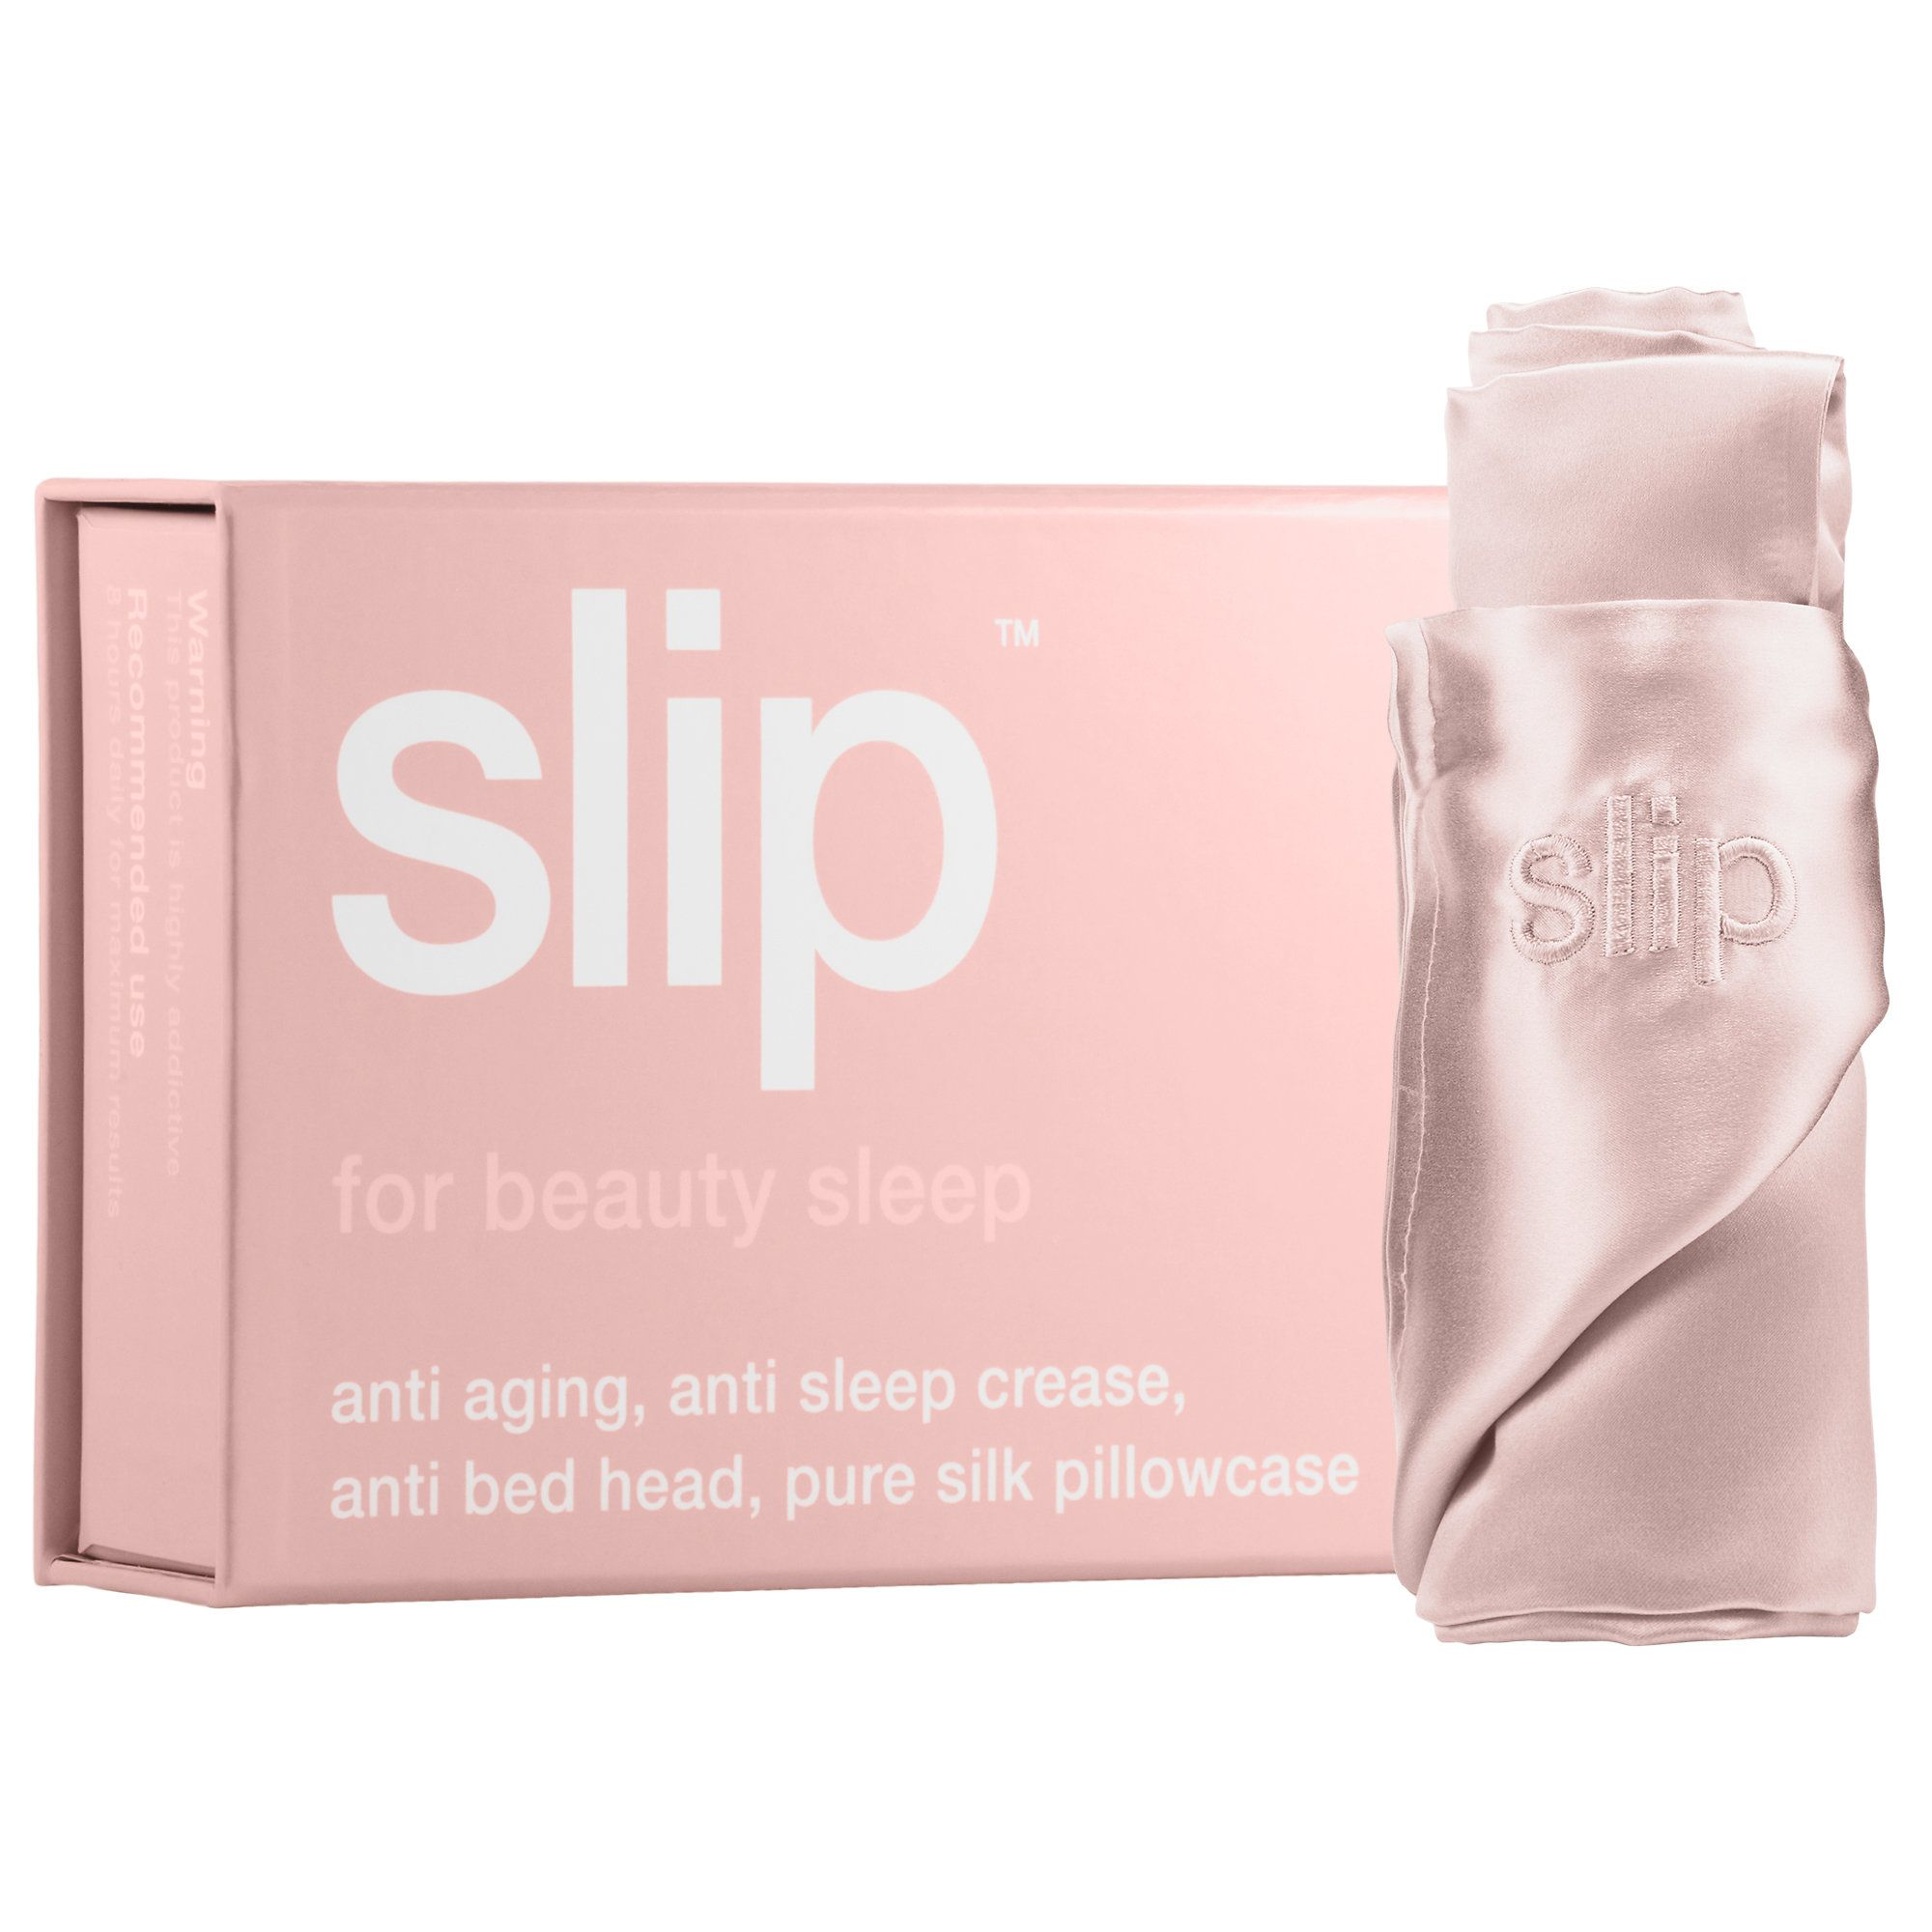 Slip Pillowcase Review Brilliant Shop Slip Beauty's Queen Silk Pillowcase At Sephorathe Antiaging Decorating Design